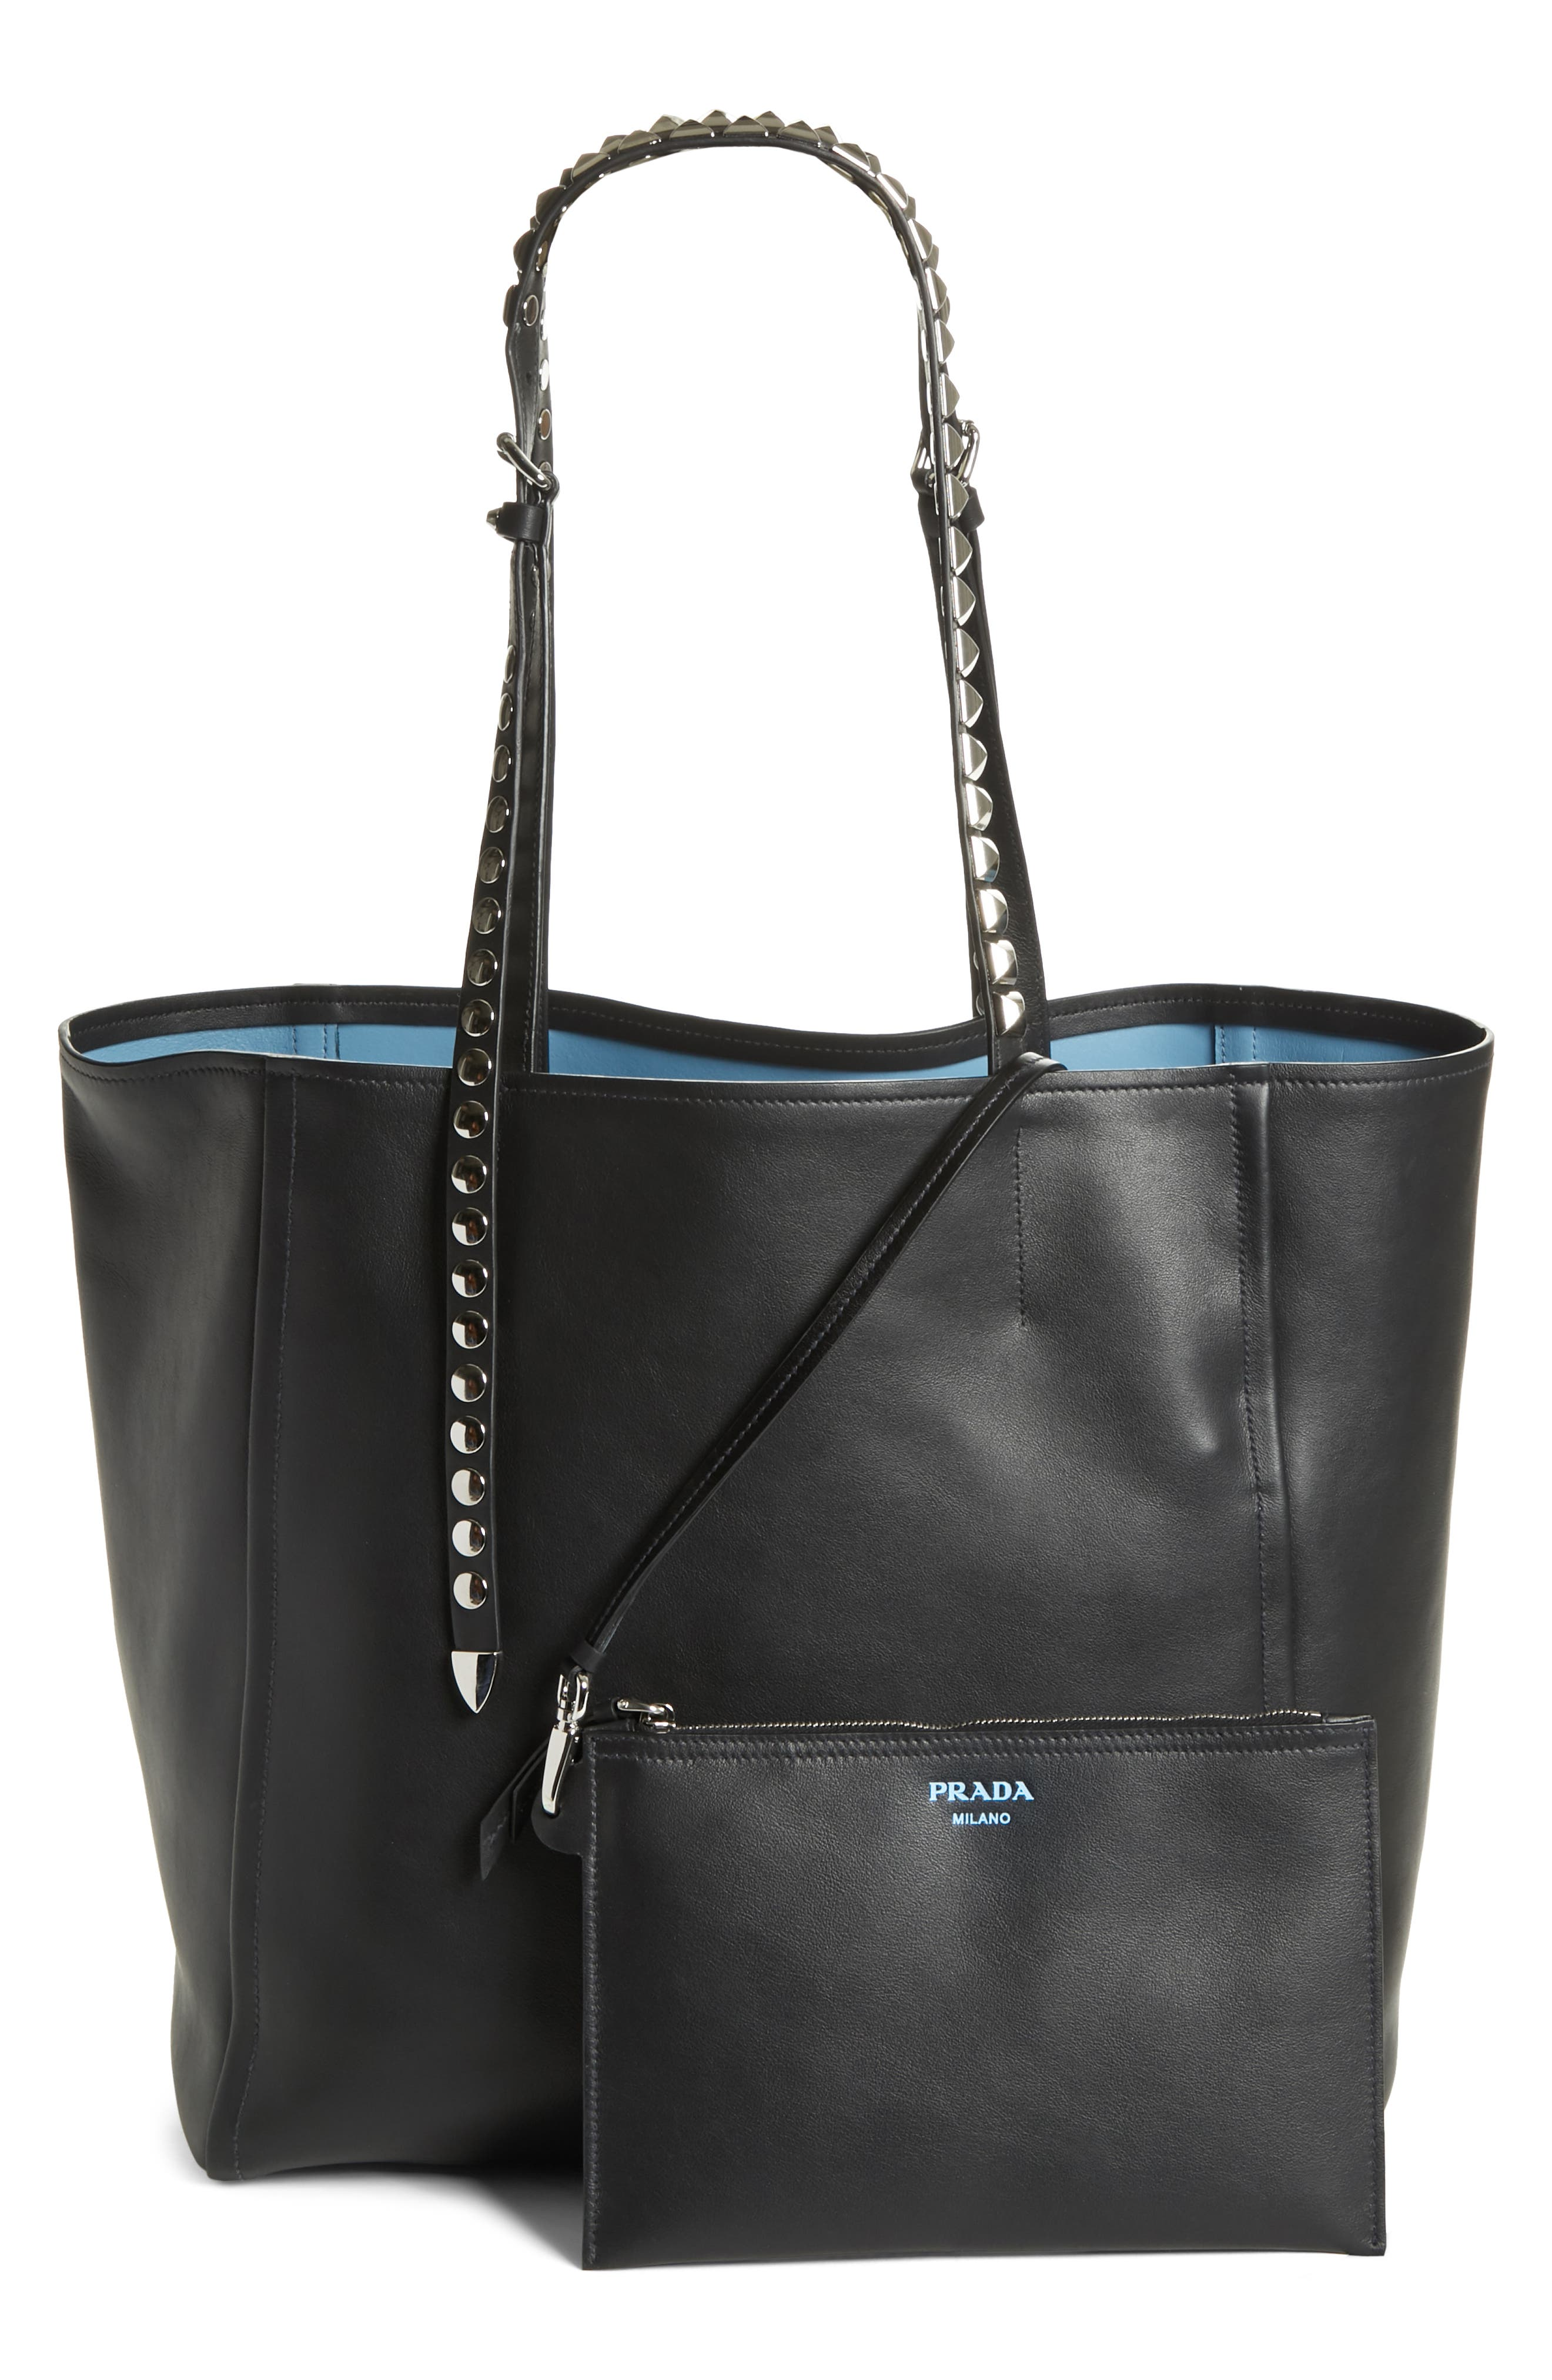 PRADA, Concept Studded Strap Calfskin Leather Tote, Alternate thumbnail 3, color, 001